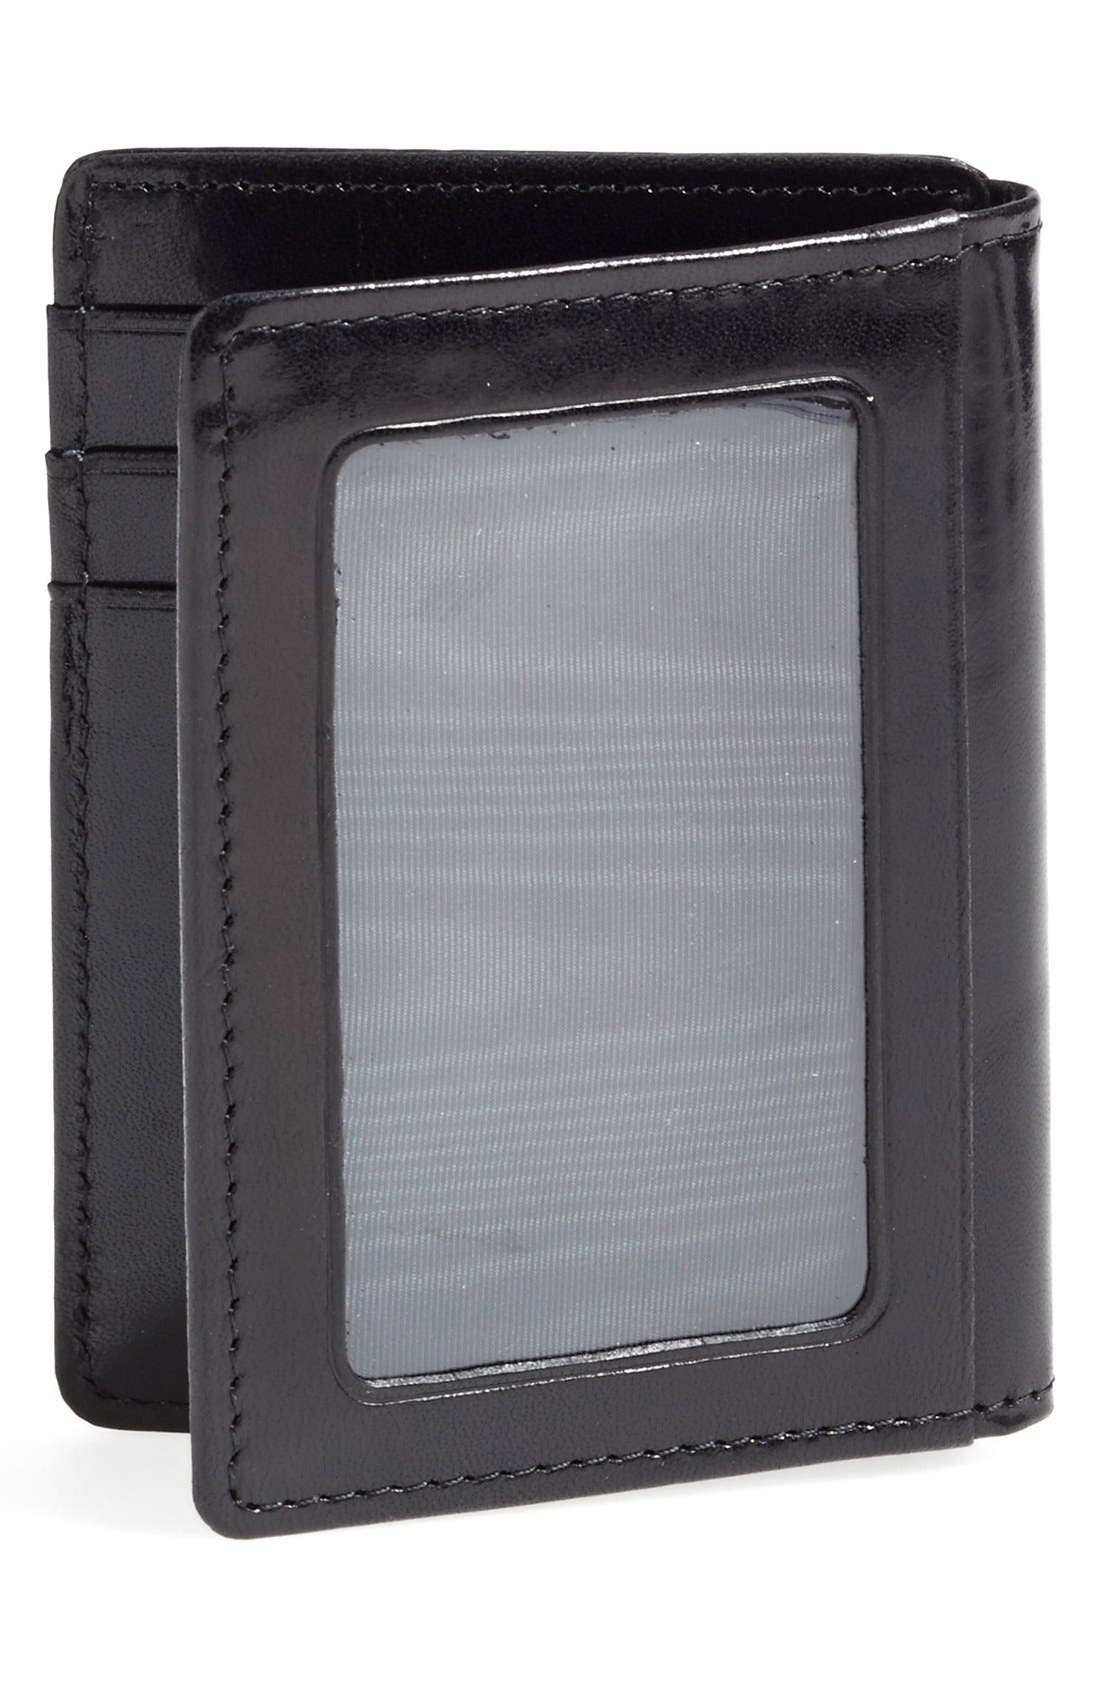 Alternate Image 3  - Bosca 'Old Leather' Front Pocket ID Wallet